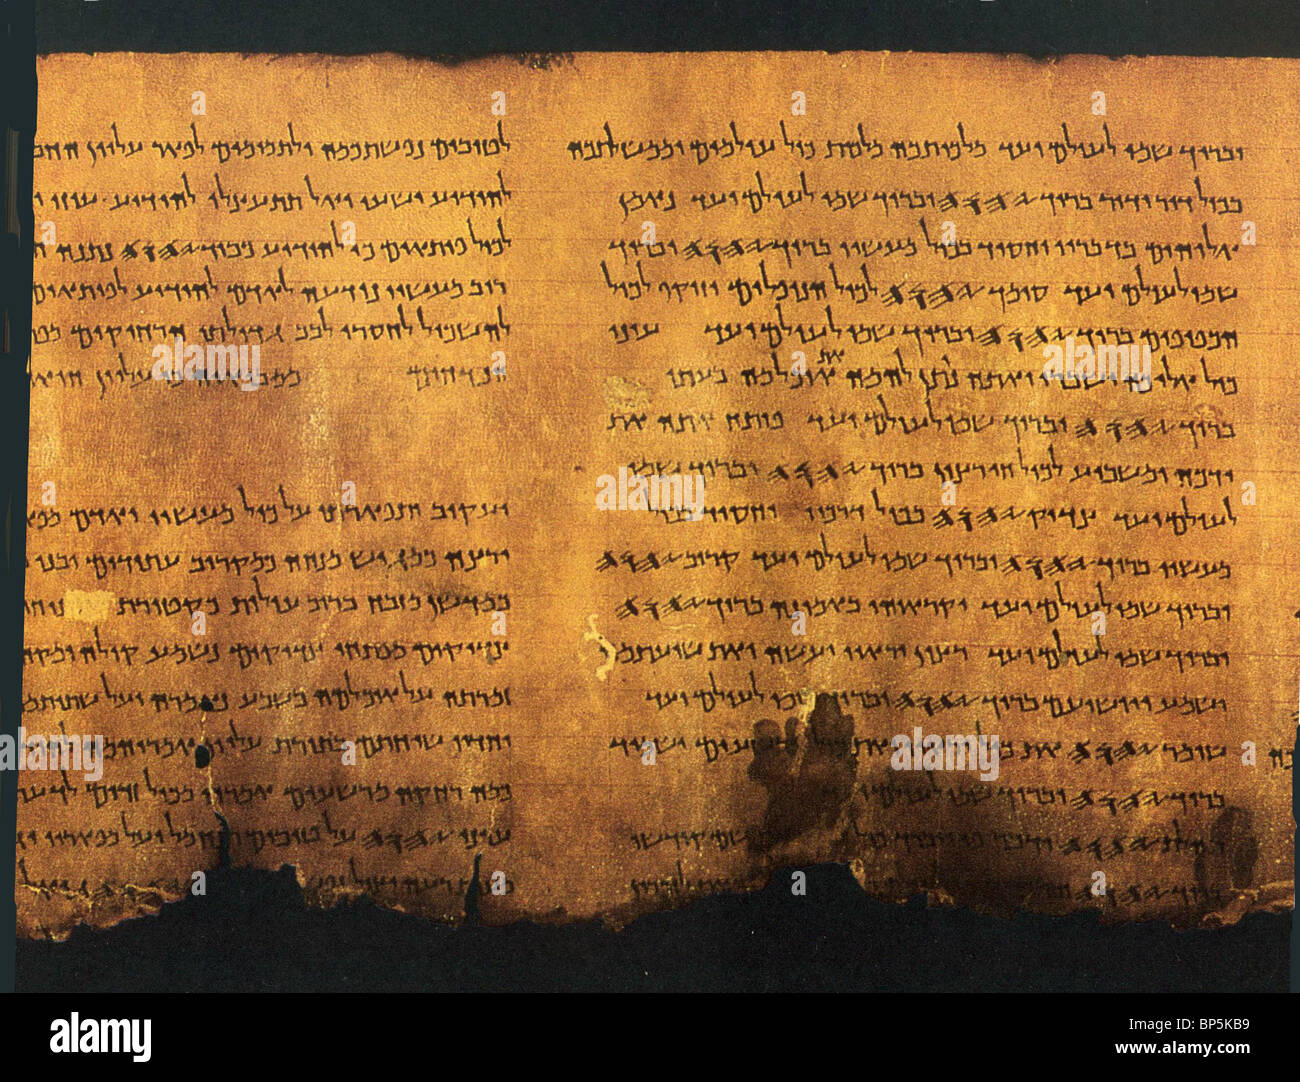 'PSALMS SCROLL' FROM QUMRAN CAVE 11 THE SCROLL CONTAINS A LITURGICAL COLLECTION FROM THE OLD TESTAMENT BOOK OF PSALMS. Stock Photo